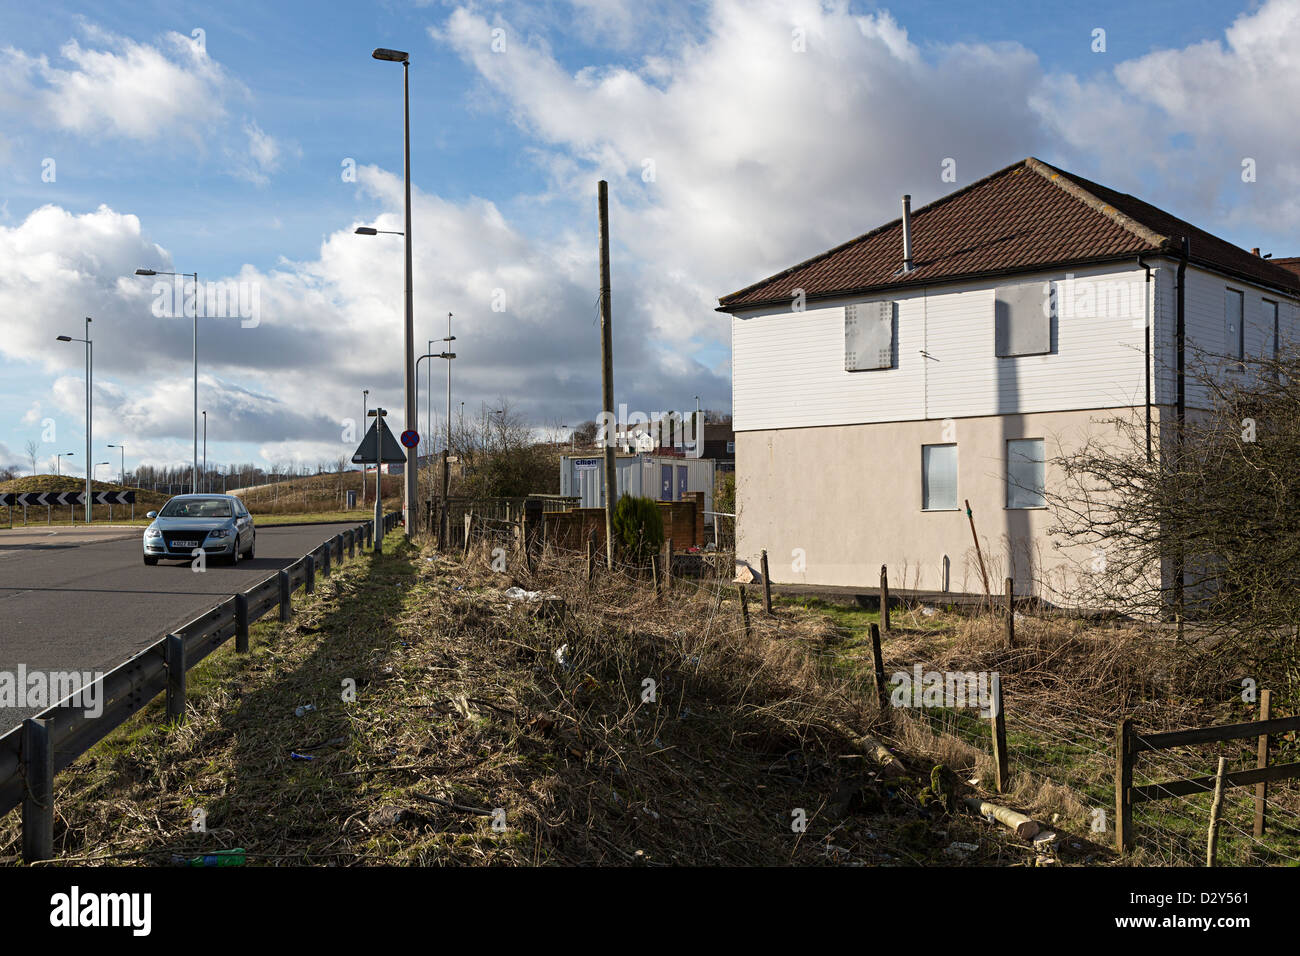 Houses compulsory purchased before widening Heads of the Valleys A465 road at Tredegar Wales UK - Stock Image